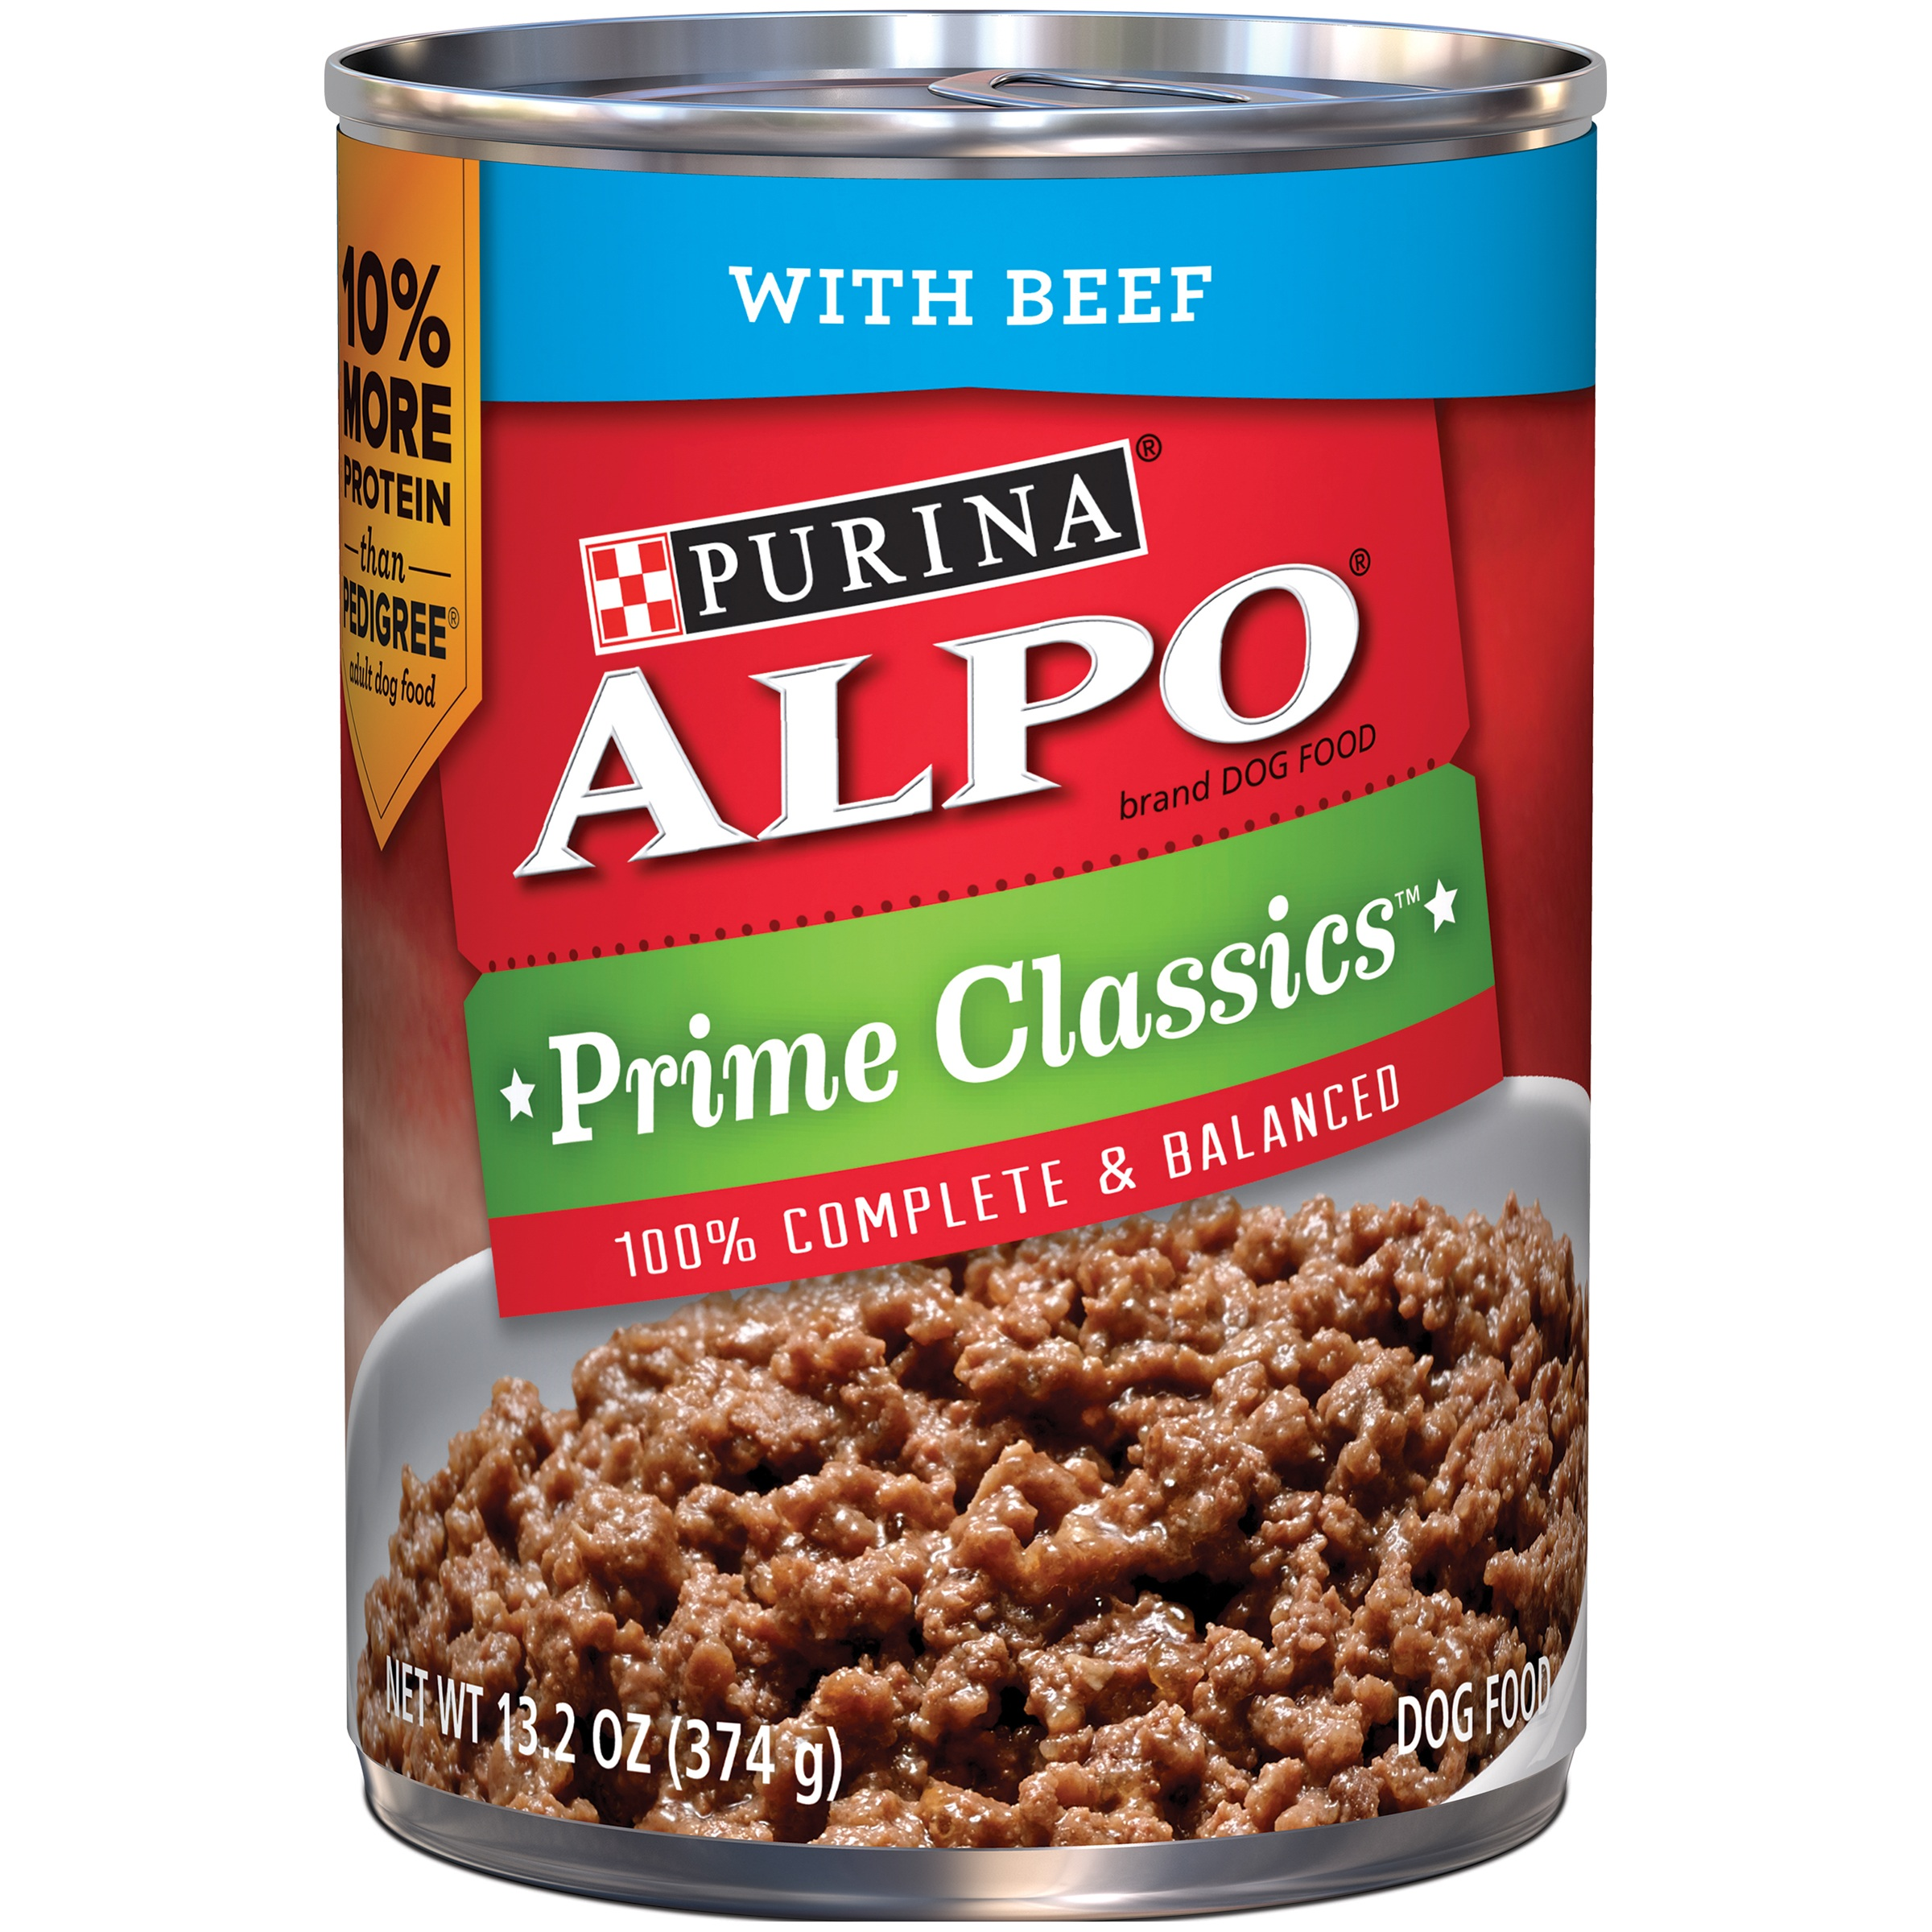 Purina ALPO Prime Classics with Beef Wet Dog Food, 13.2 Oz.